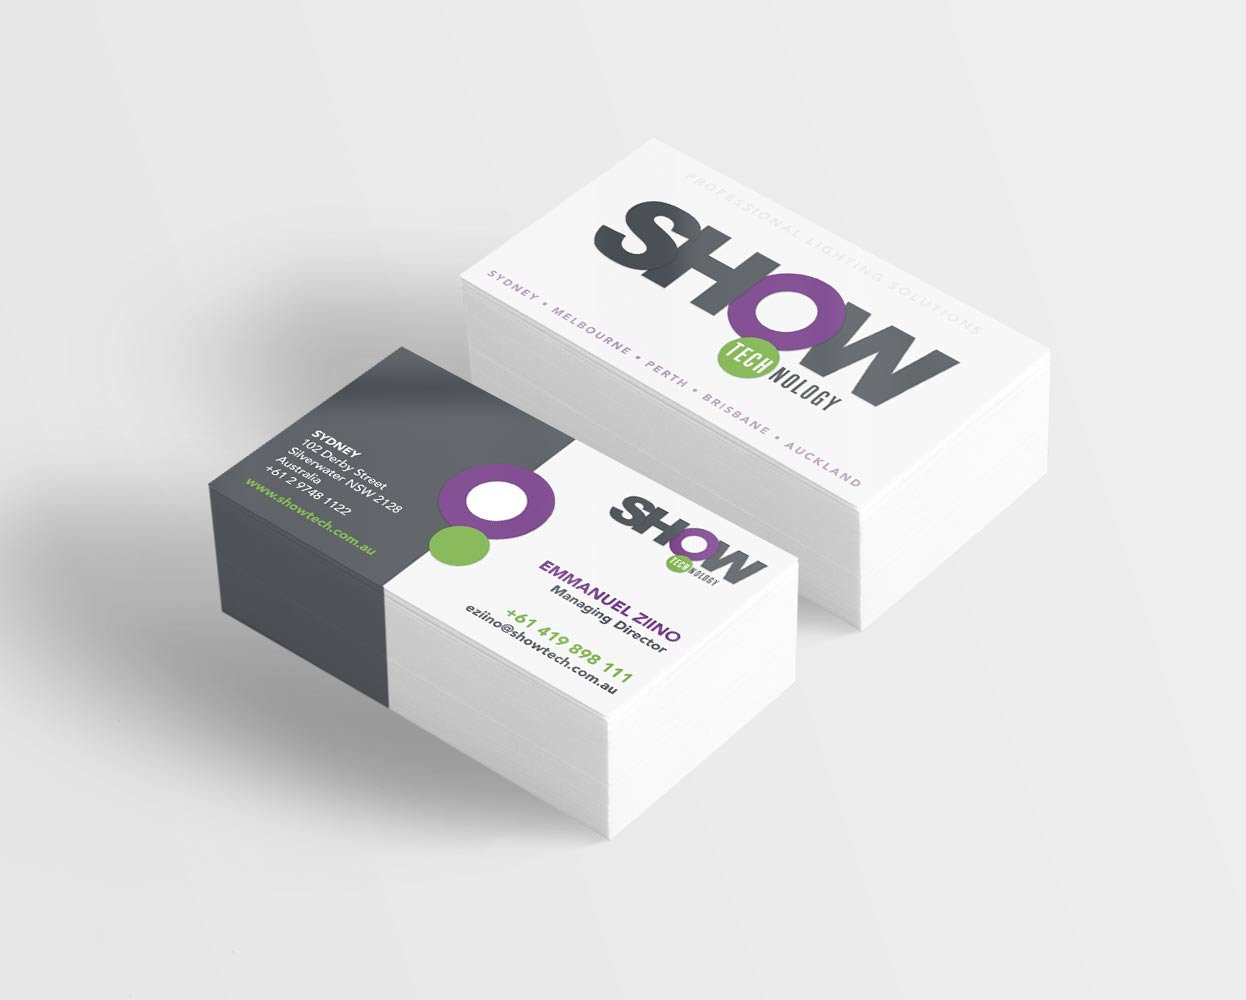 Show_Technology_branding_Business_cards